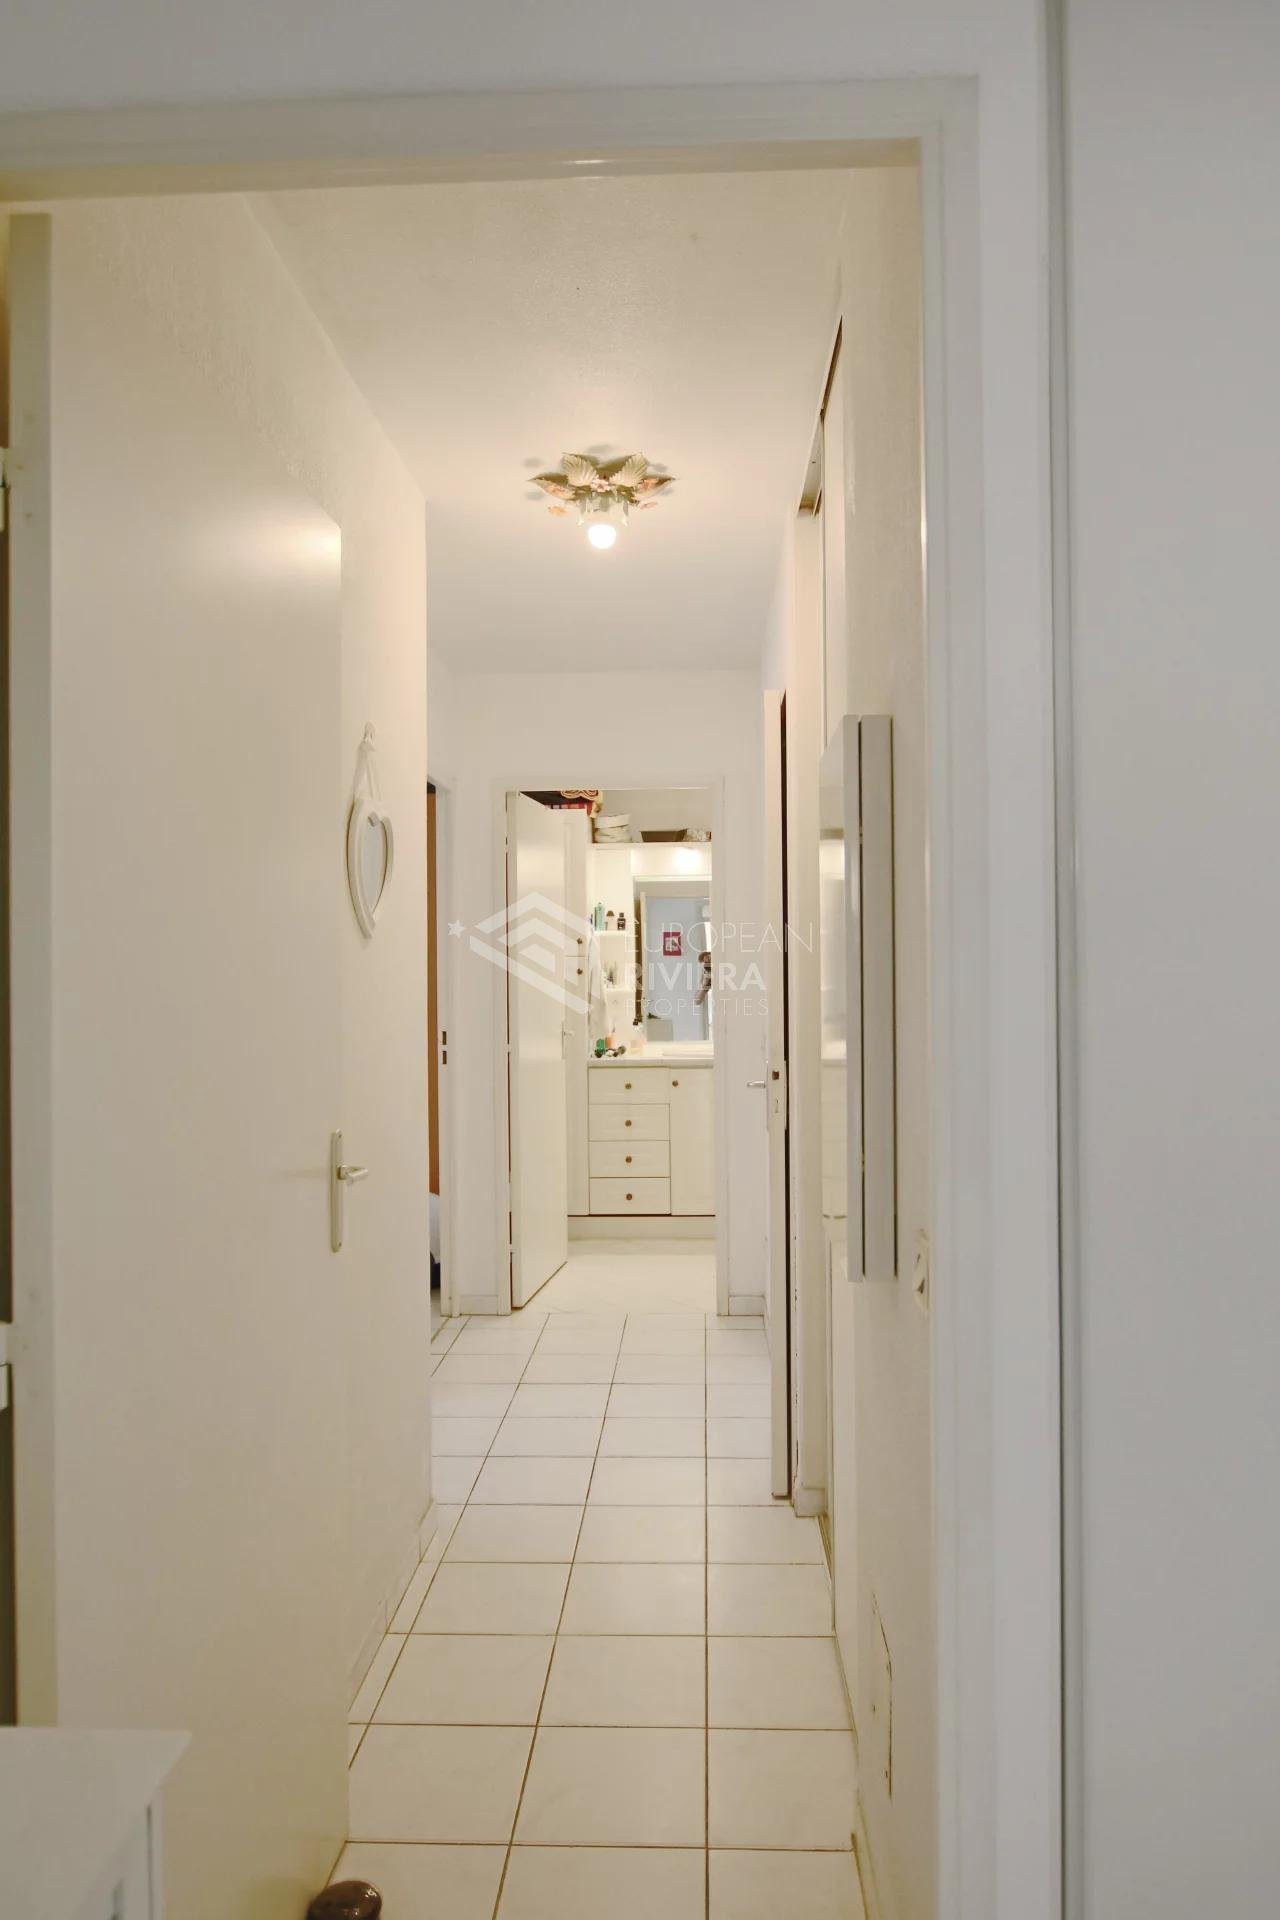 CANNES LA BOCCA - Residence  with pool - 3 rooms flat with  terrasse and parking